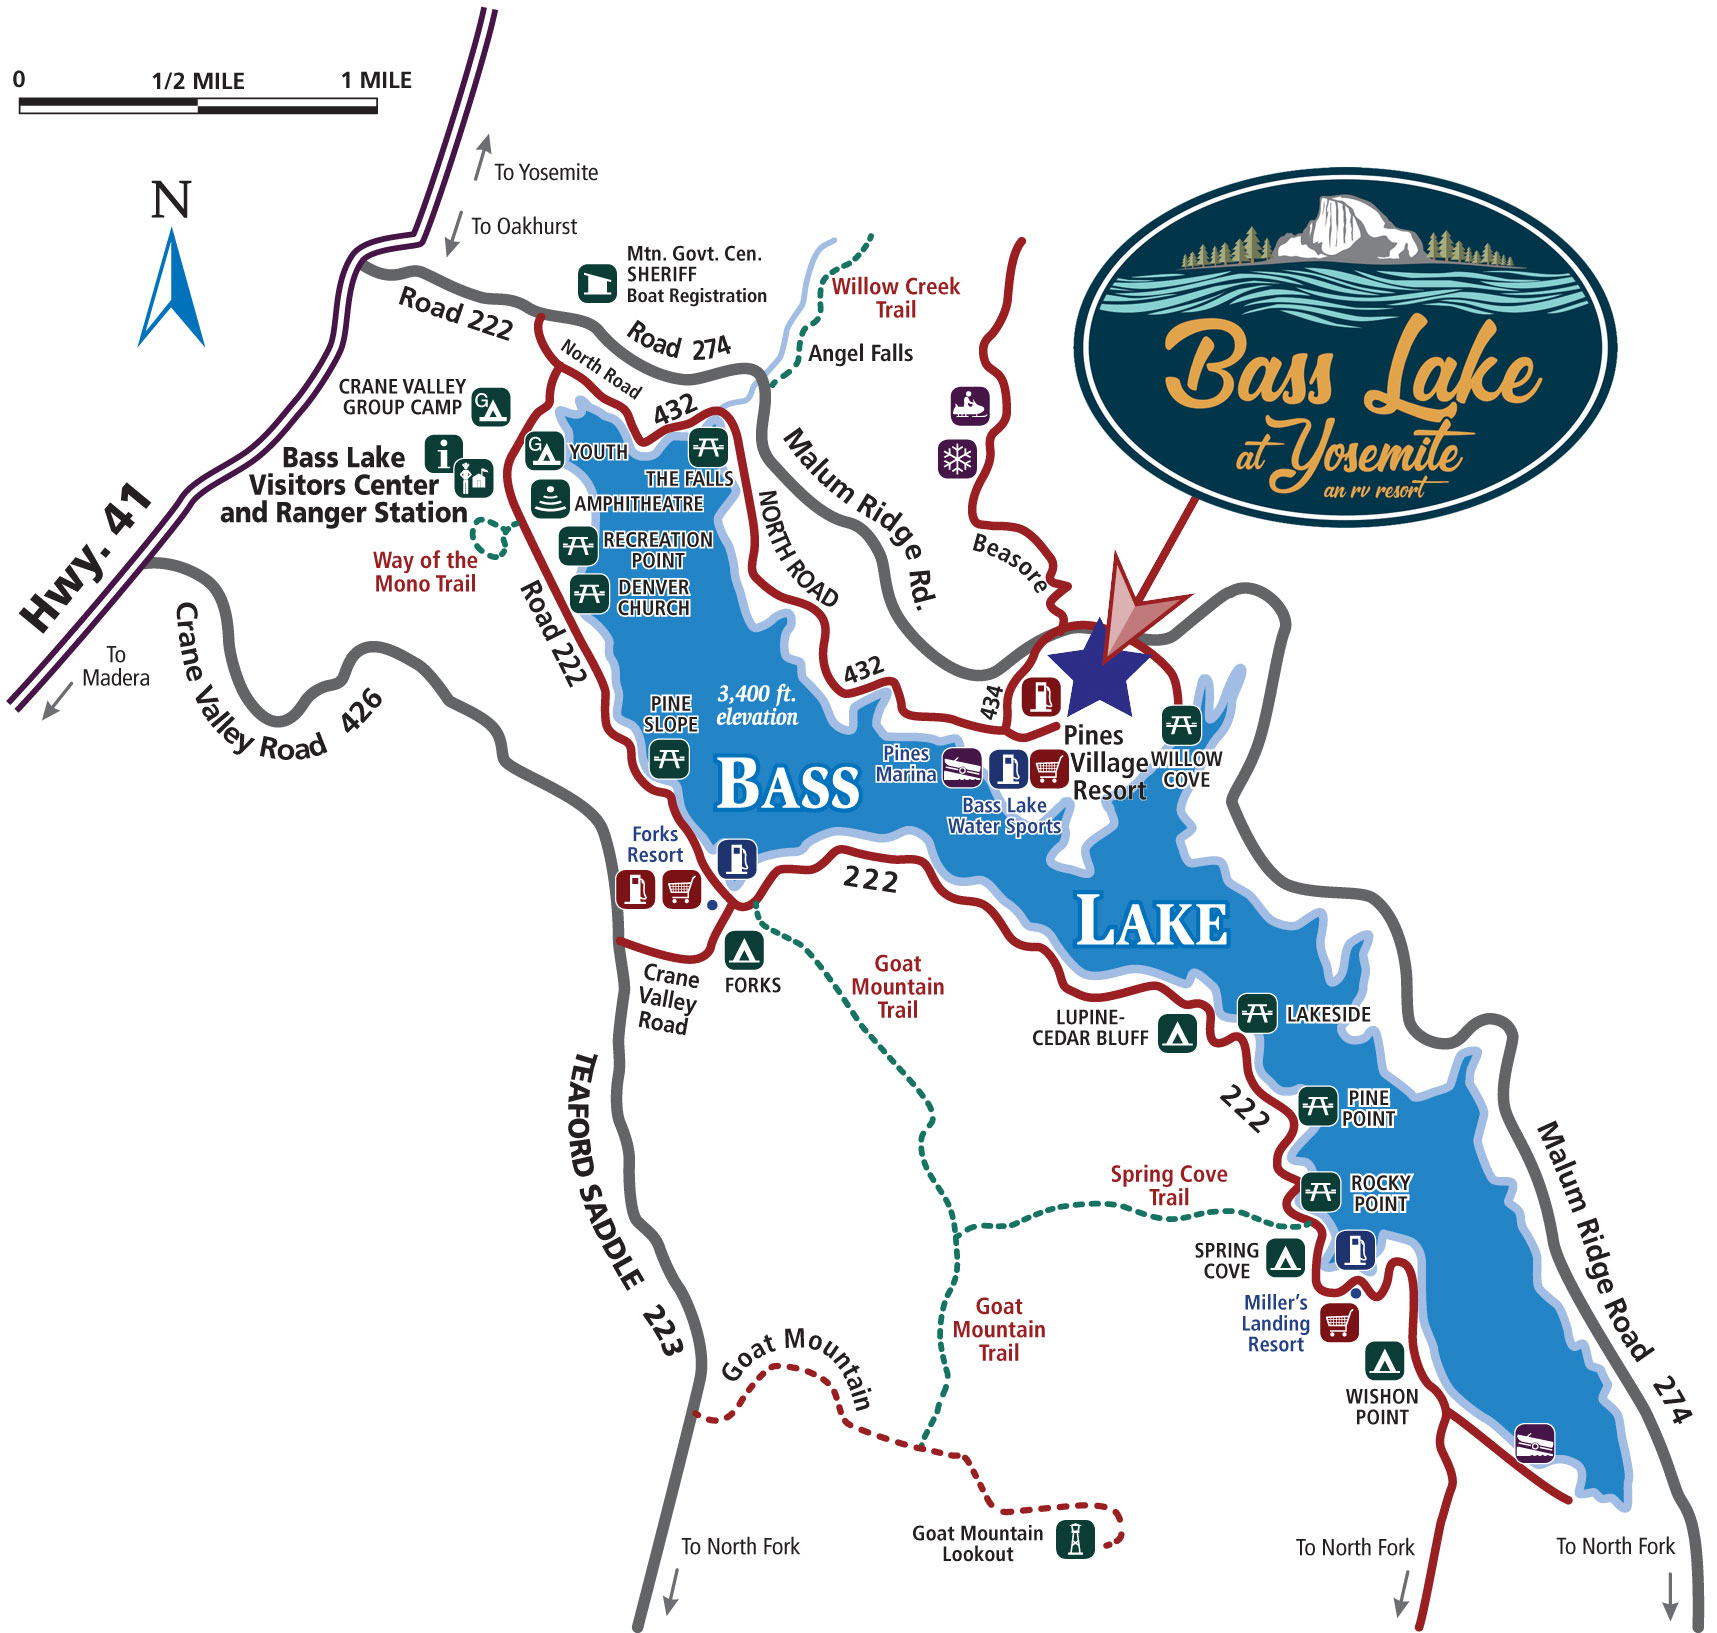 bass_lake_at_yosemite_area_map